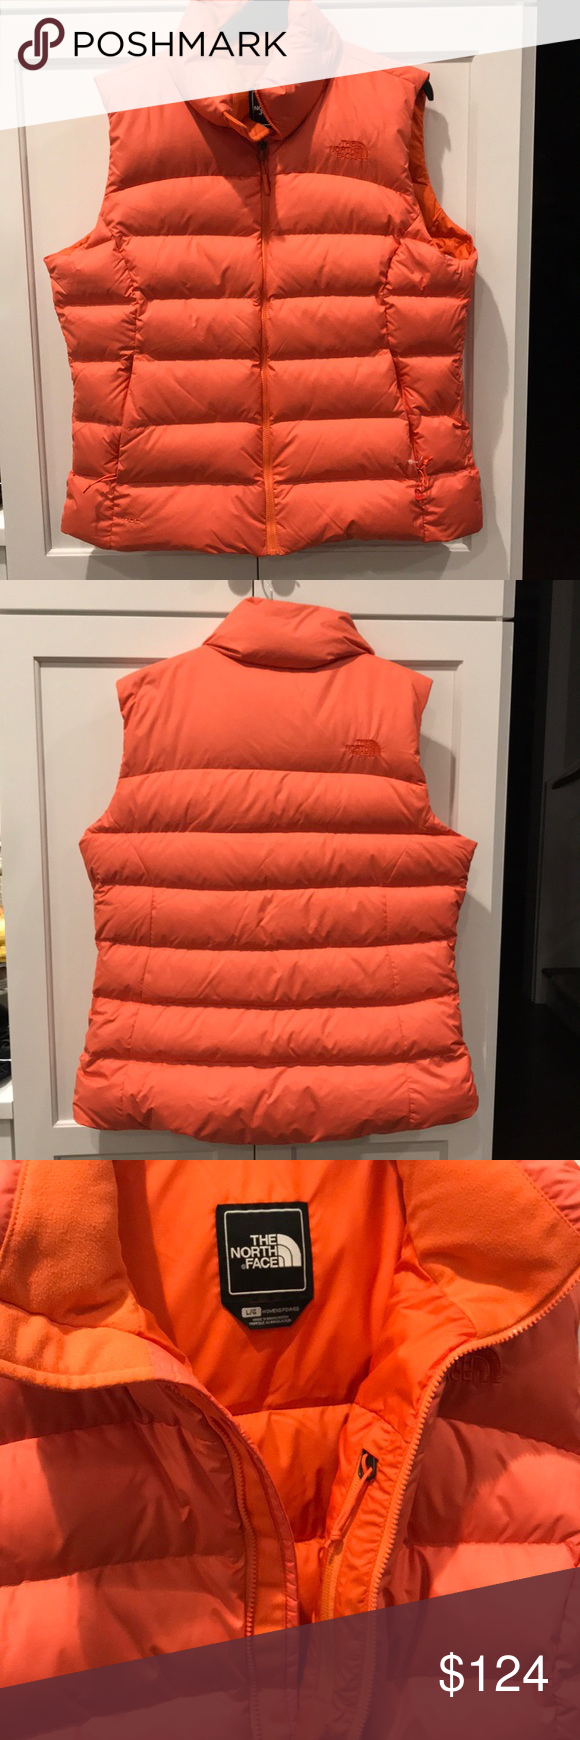 4fd6ec78f464 The North Face Womens Nuptse Vest Gilet Goose Down NEW without tag PRICED  FAIR   FIRM🙏🏻❤ Poshmark takes 20%! The North Face Womens Nuptse Vest  Gilet ...